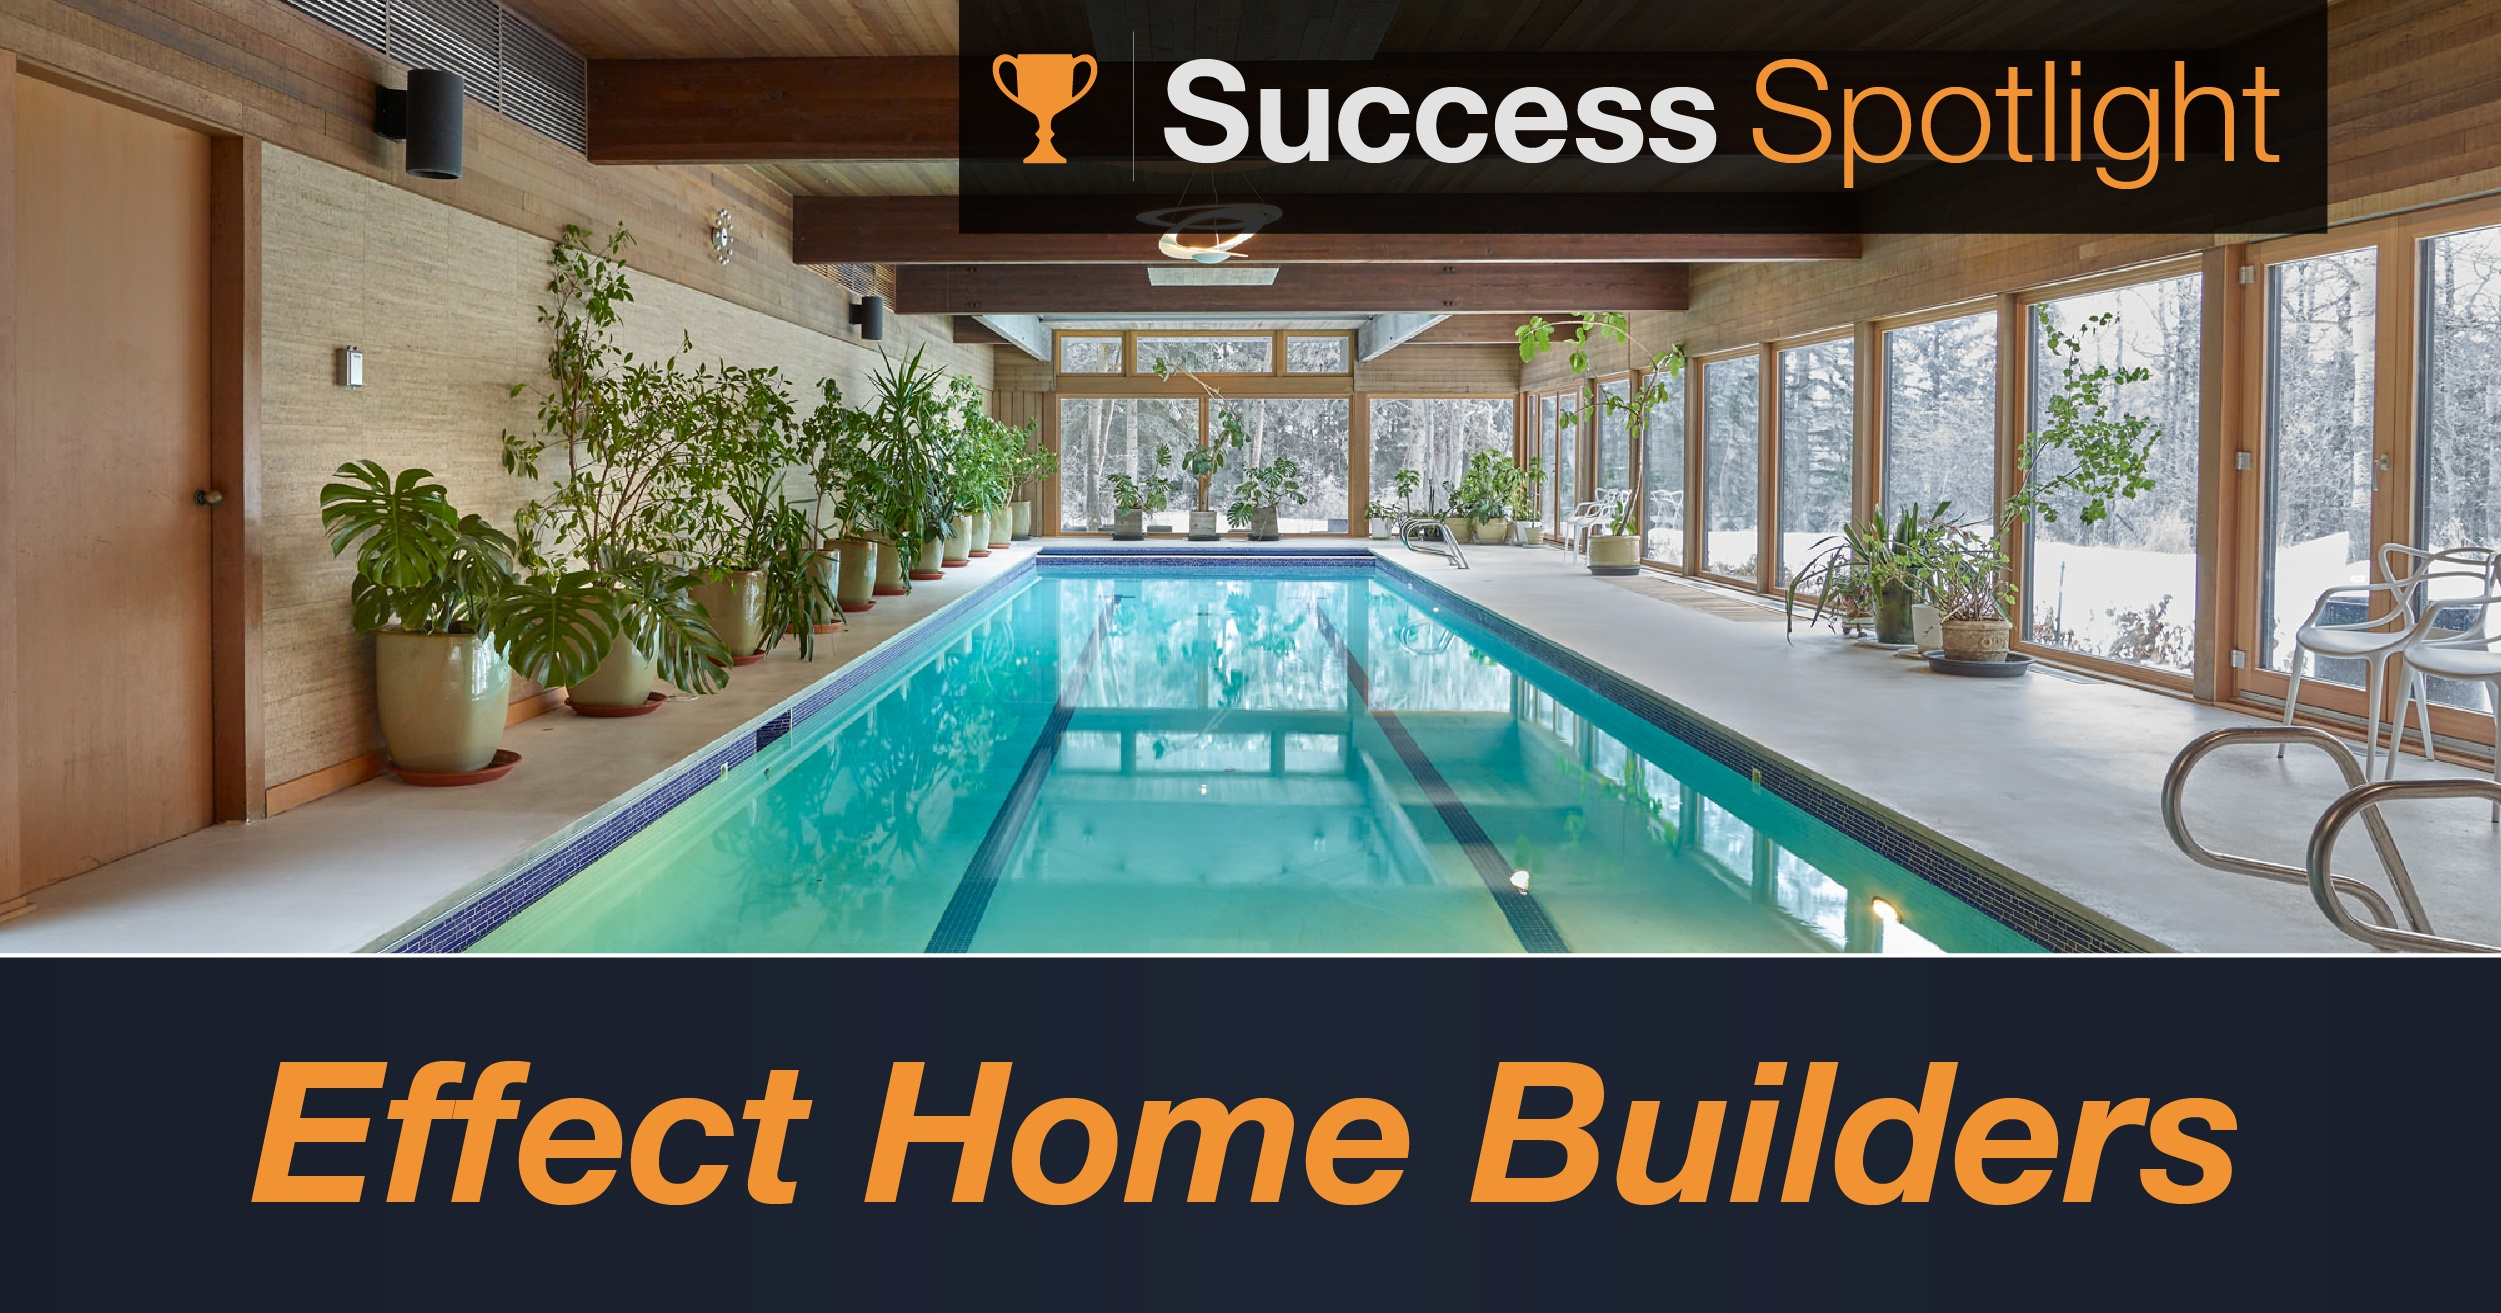 Success Spotlight: Effect Home Builders